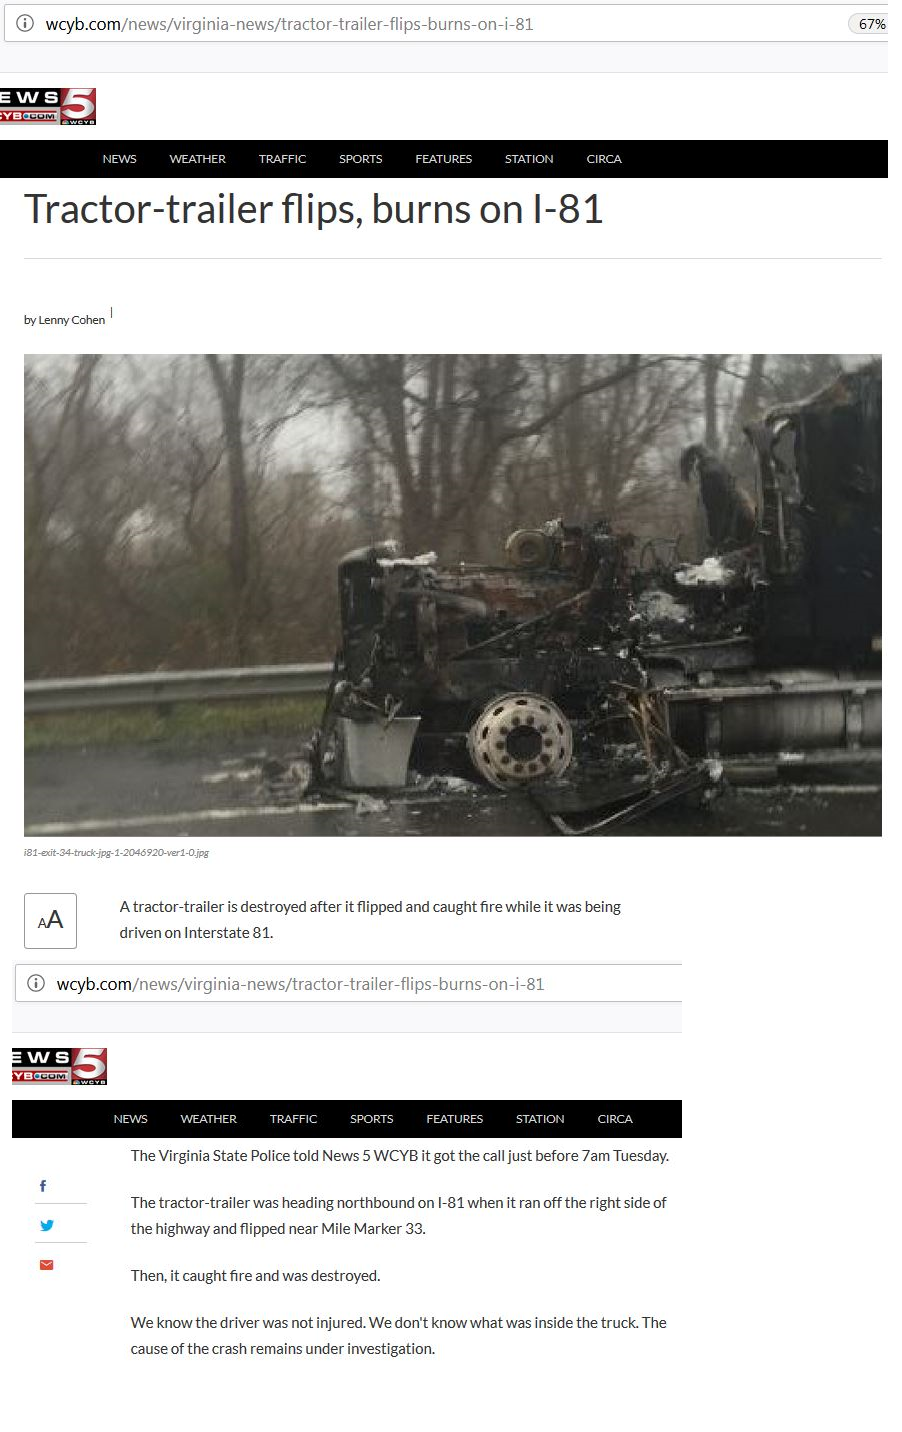 Tractor-trailer flips burns on I-81